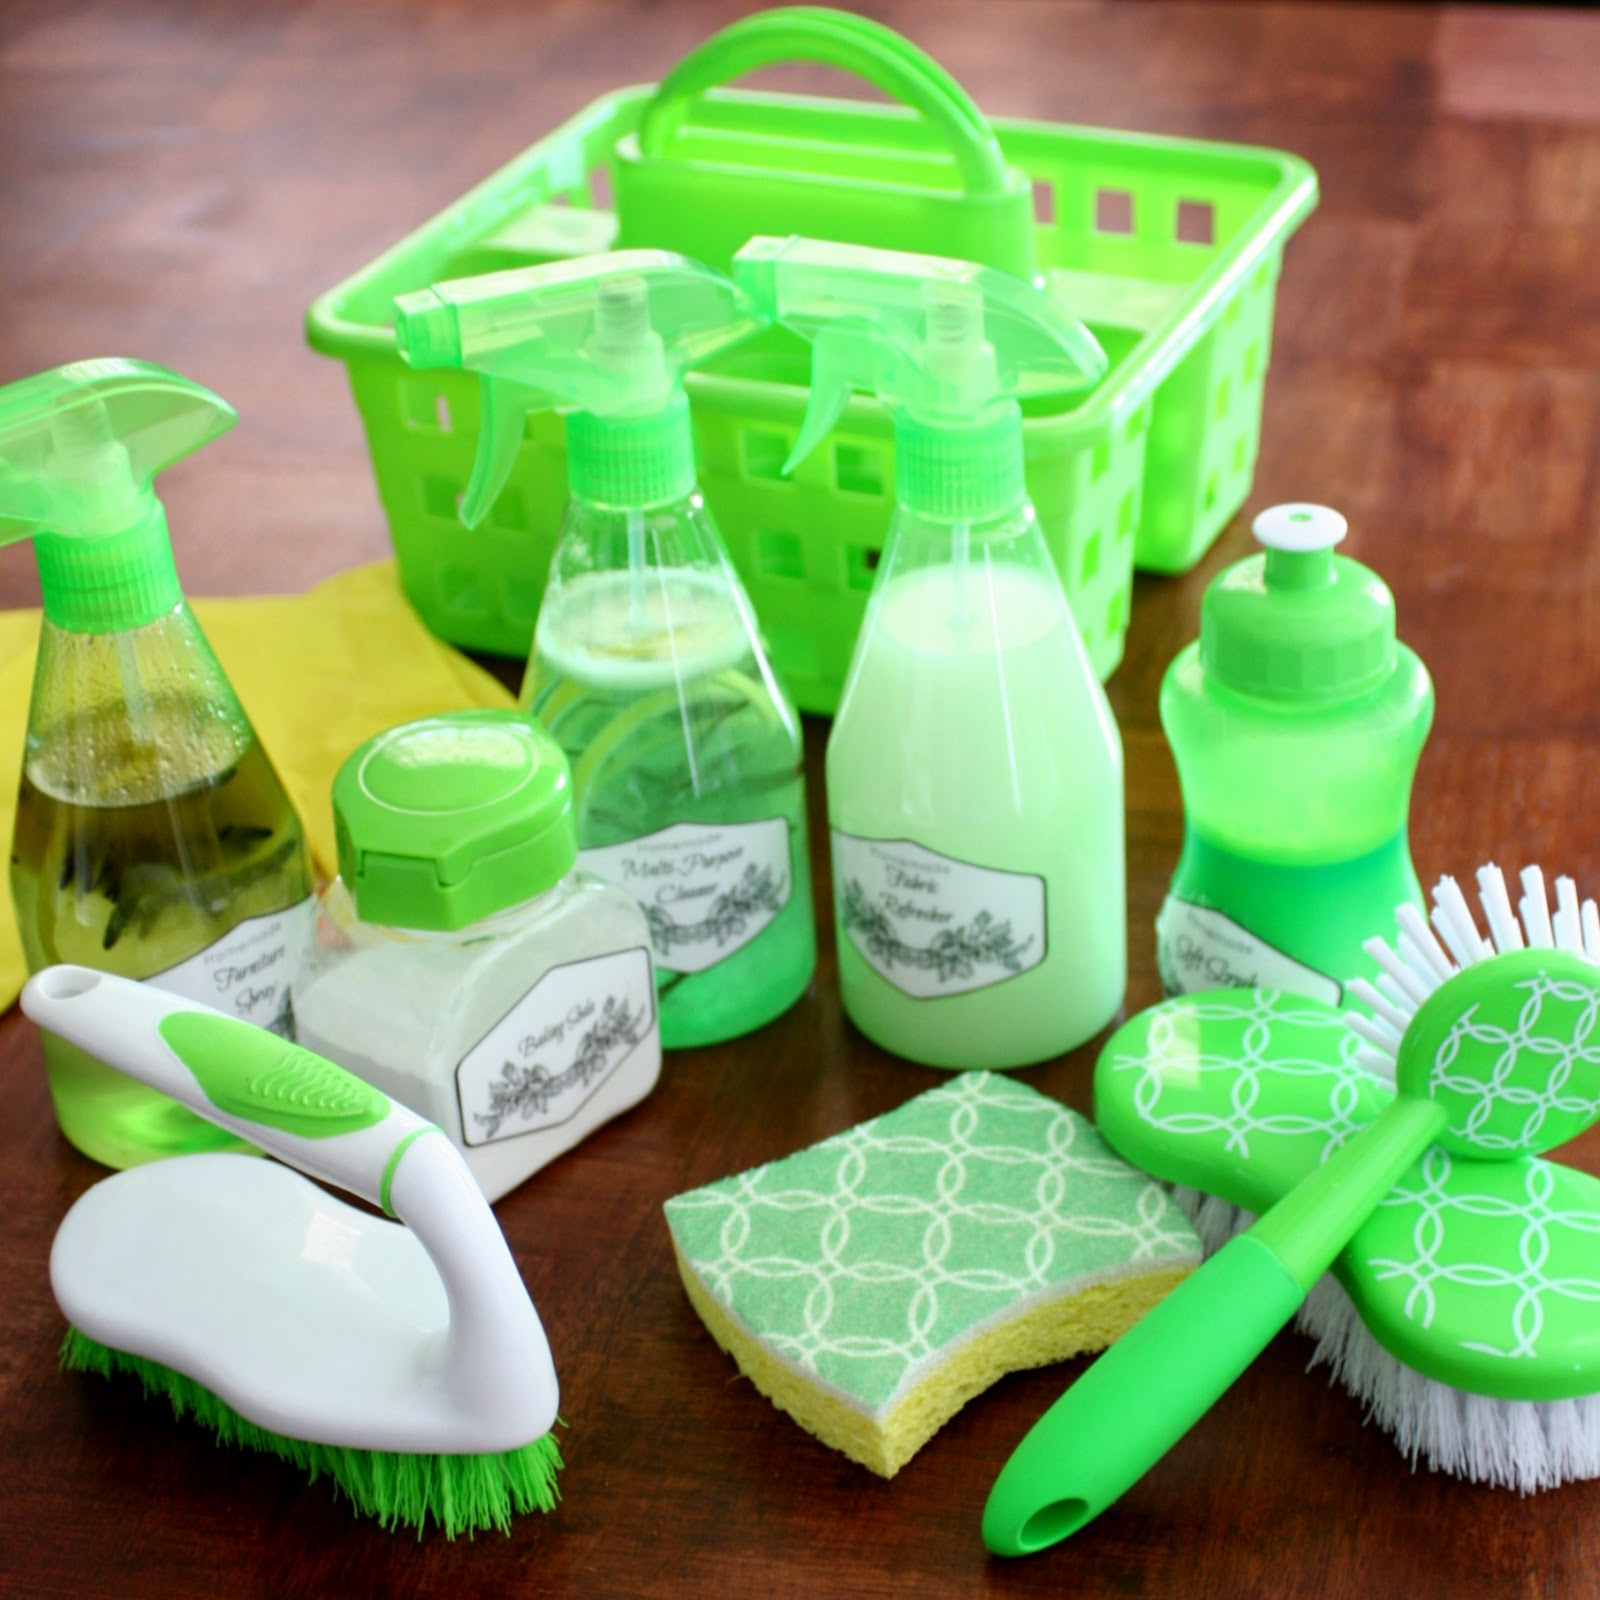 DIY Cleaning Kit with Homemade Cleaners | Jordan's Easy ...